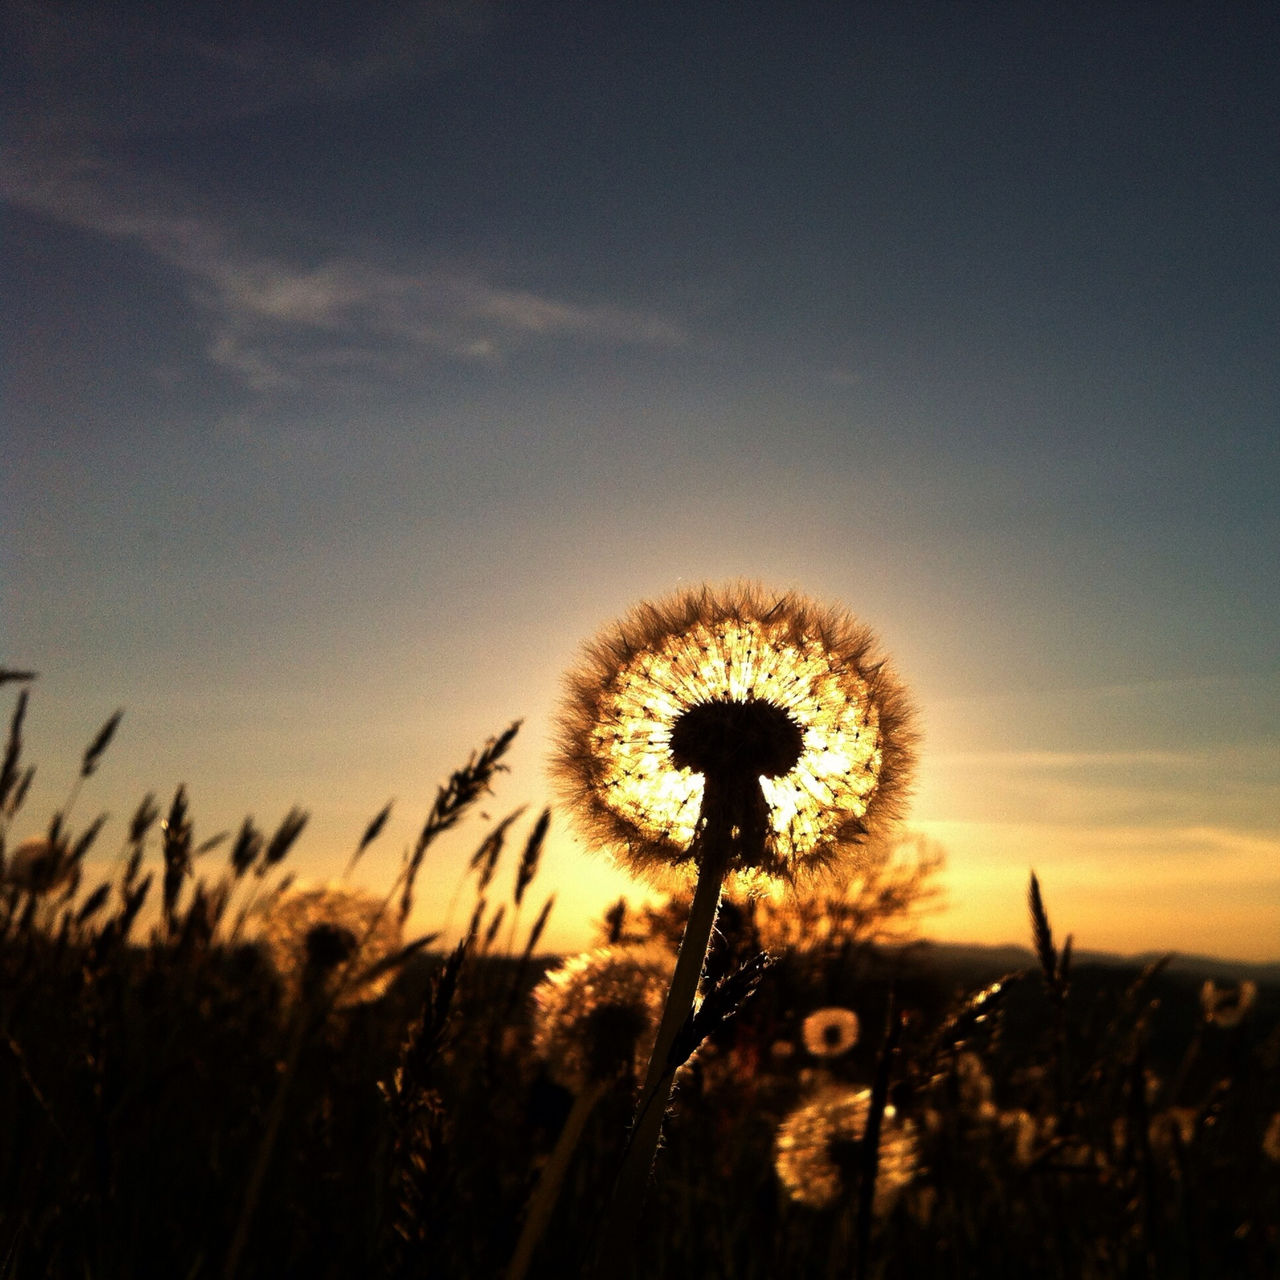 Dandelion blooming on field at sunset